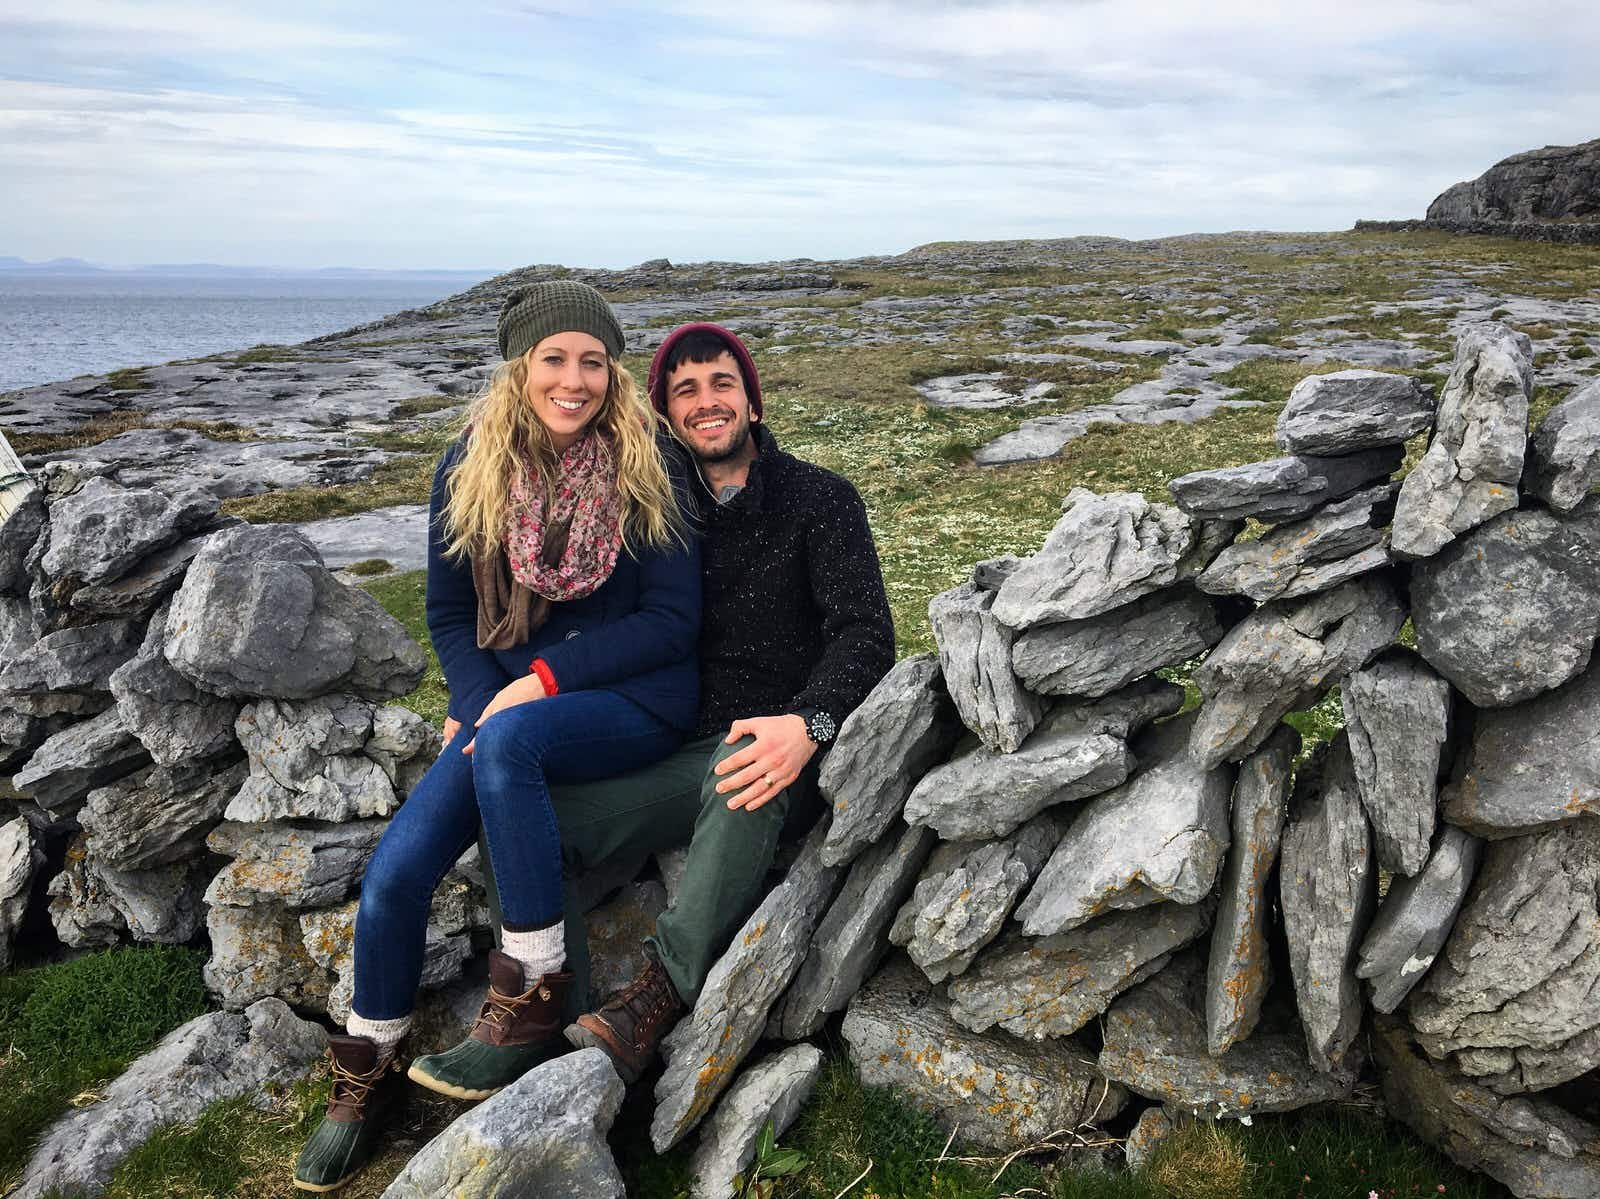 A young couple sit on a traditional stone wall in the Irish countryside, they are both wearing hats, boots, jeans and sweaters and the woman is wearing a scarf.